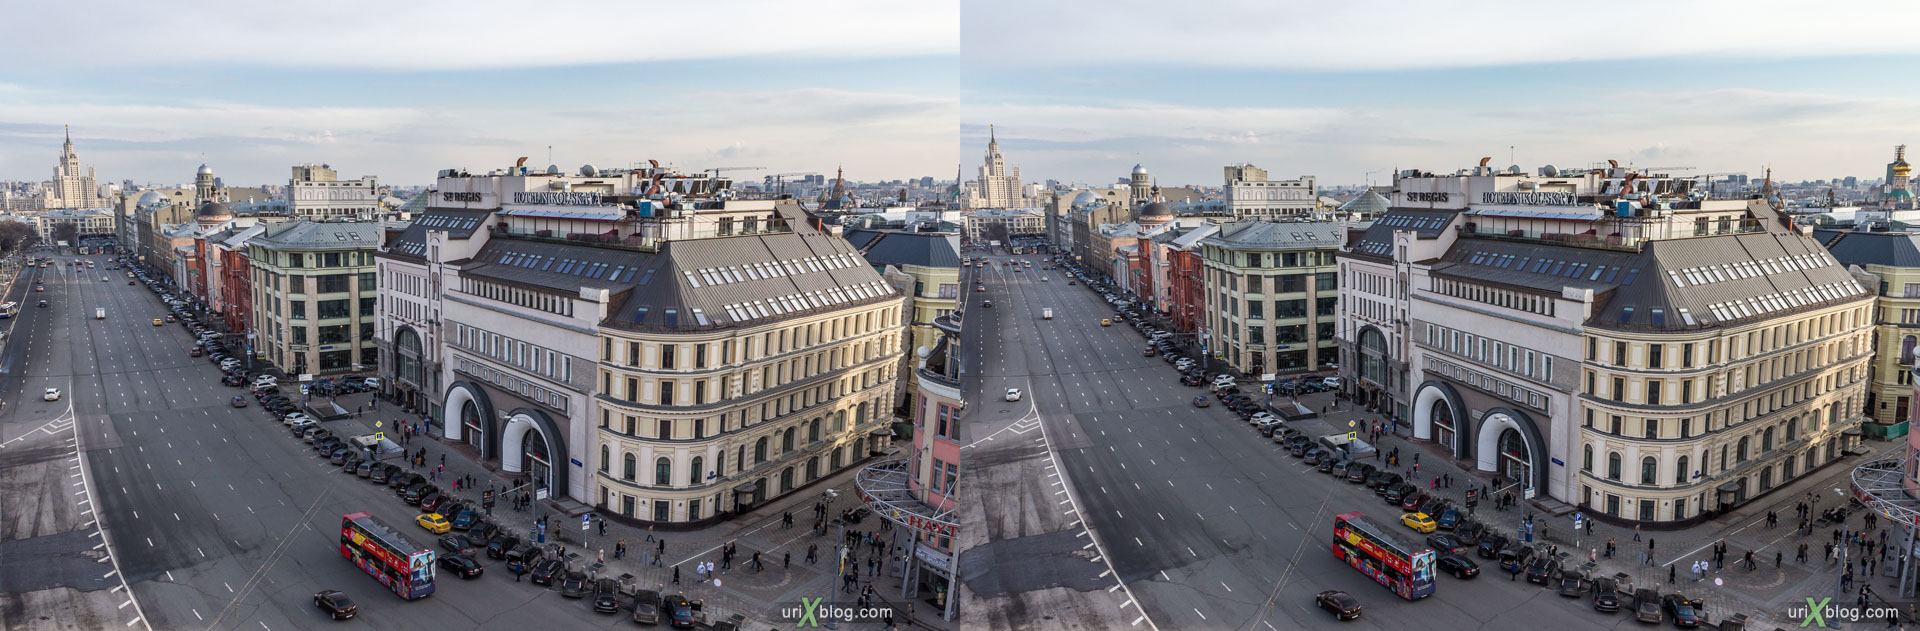 Central Childrens World, Shop, Store, Lubyanskaya square, Moscow, Russia, 3D, stereo pair, cross-eyed, crossview, cross view stereo pair, stereoscopic, 2015